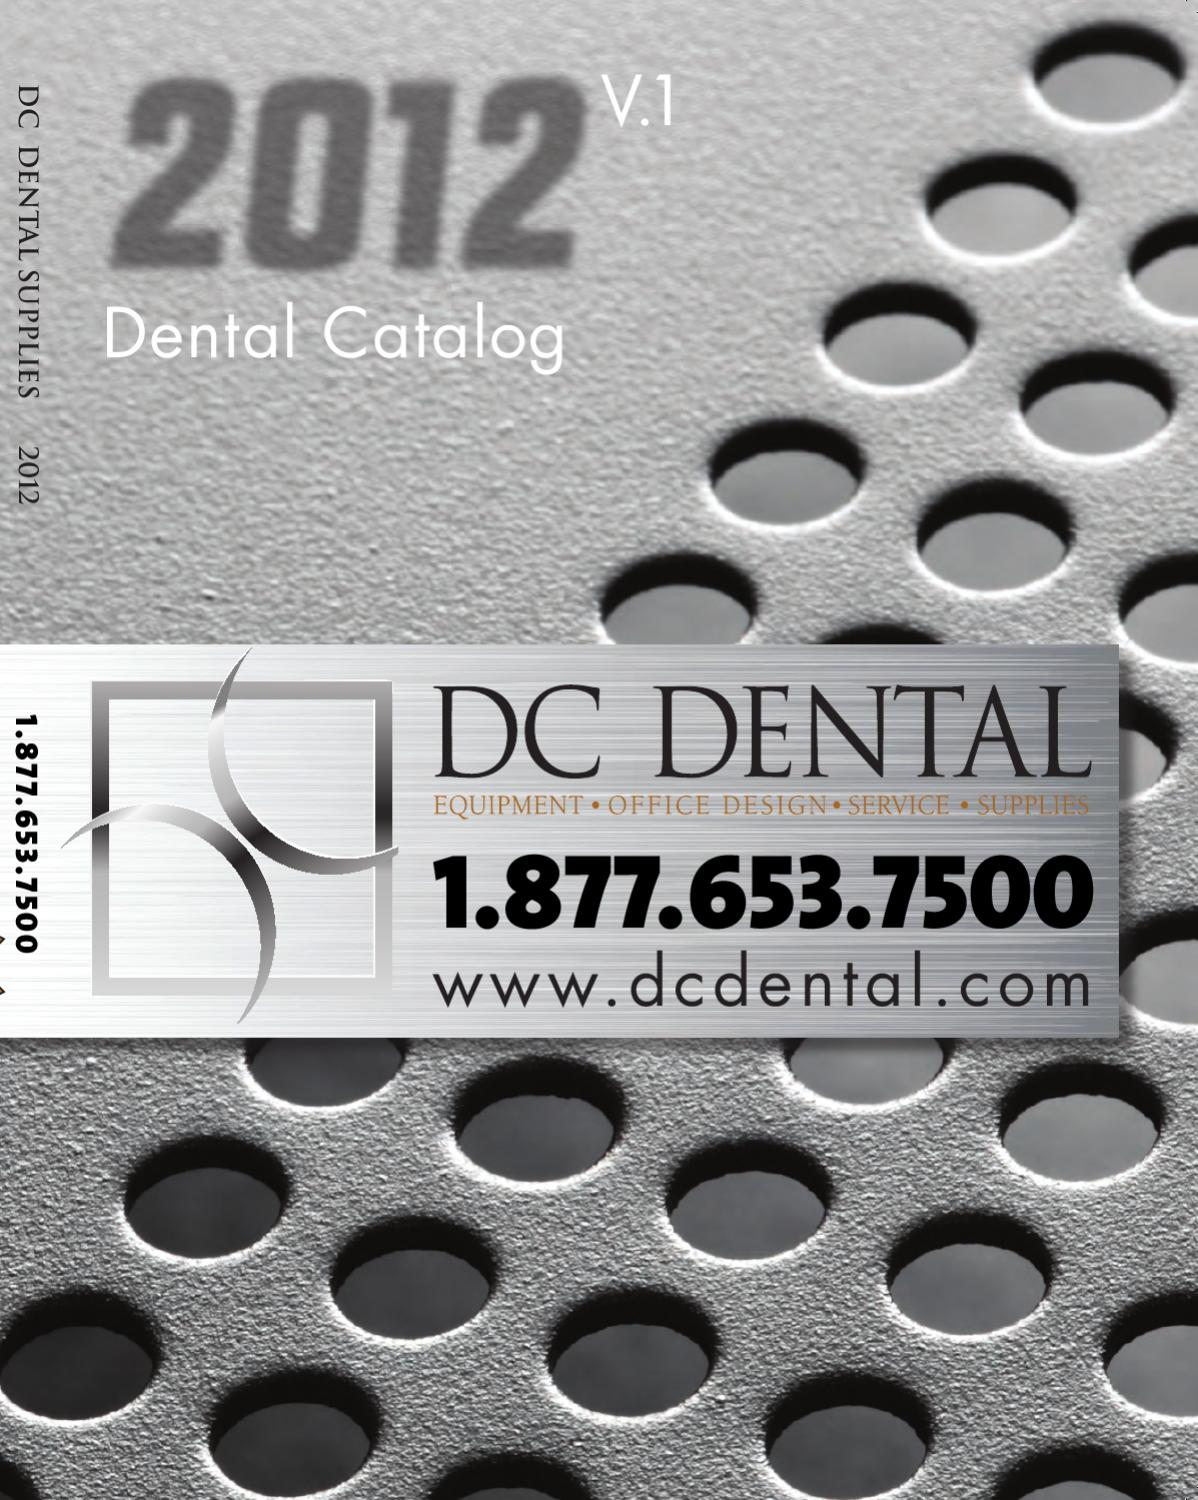 DC Dental Full Catalog 2012 v1